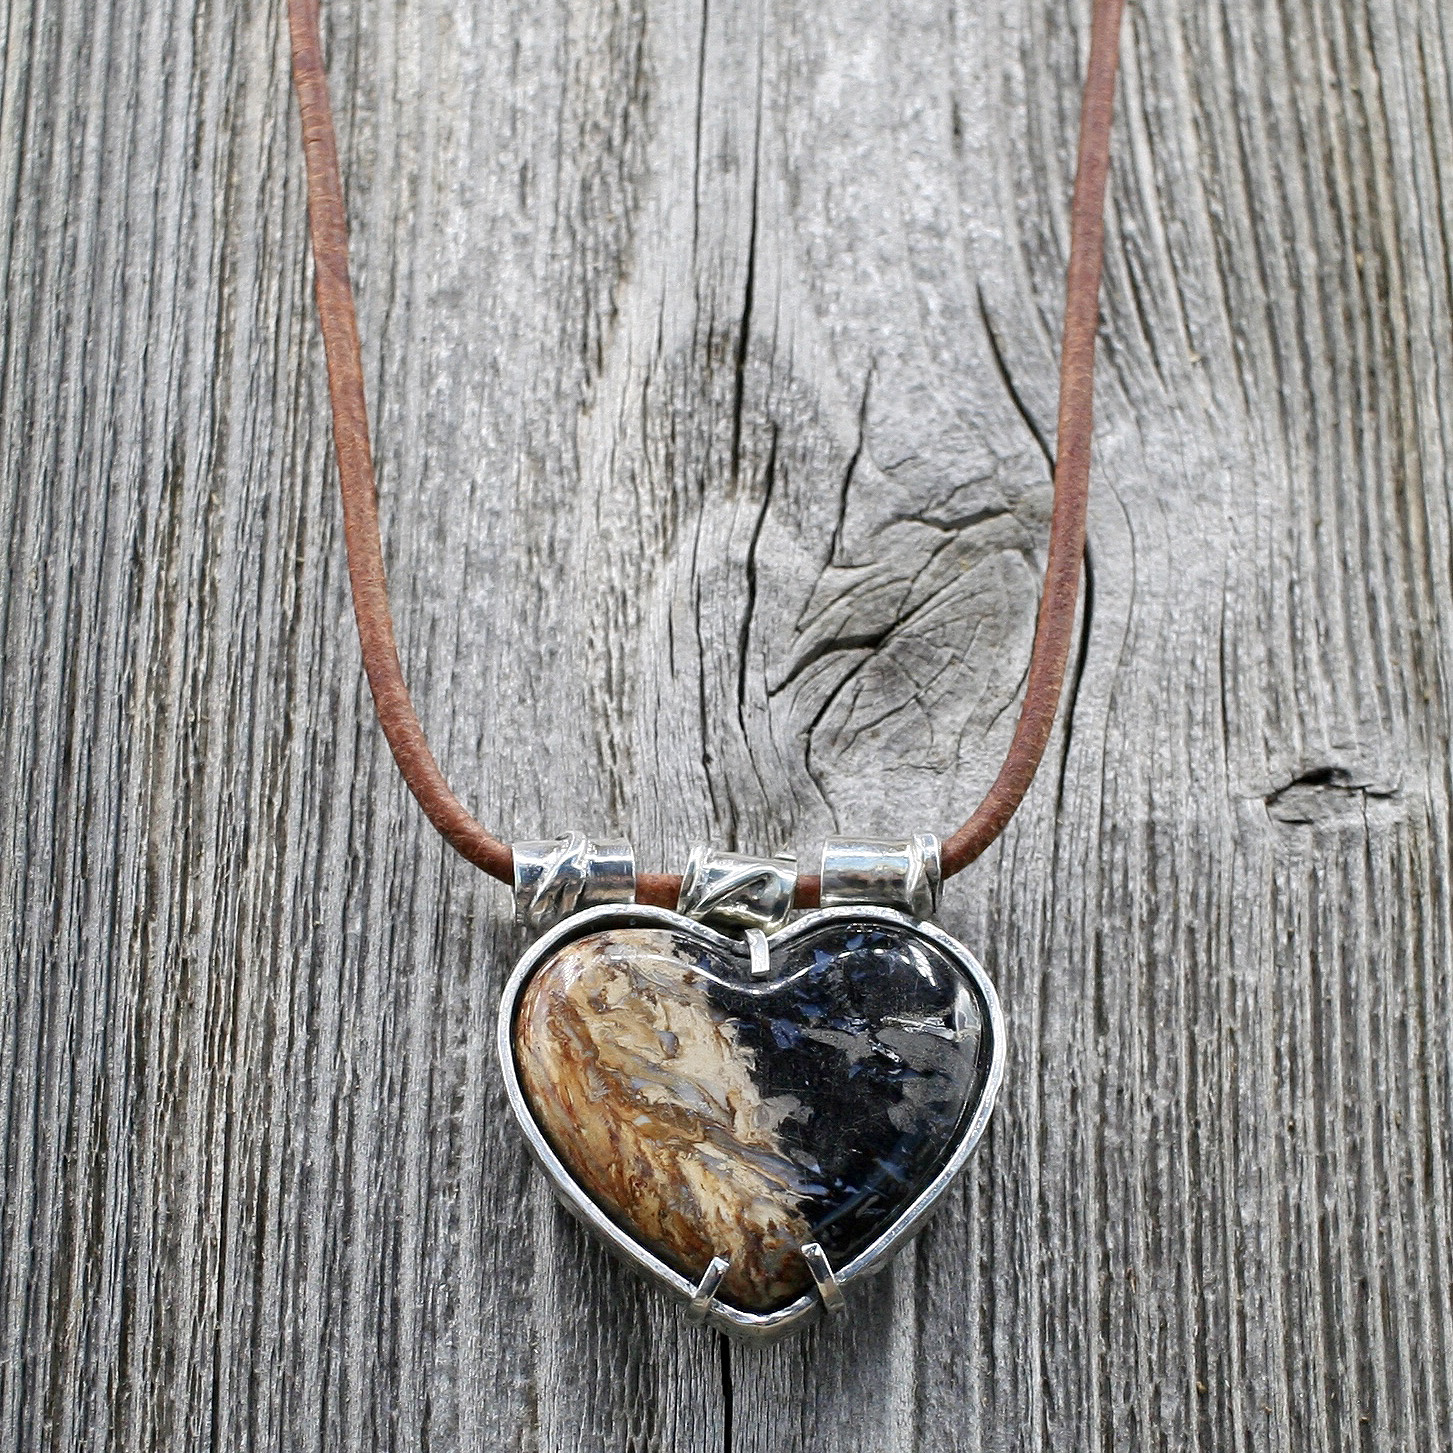 Handcrafted Stone Heart Pendant on Tan Leather Cord Necklace